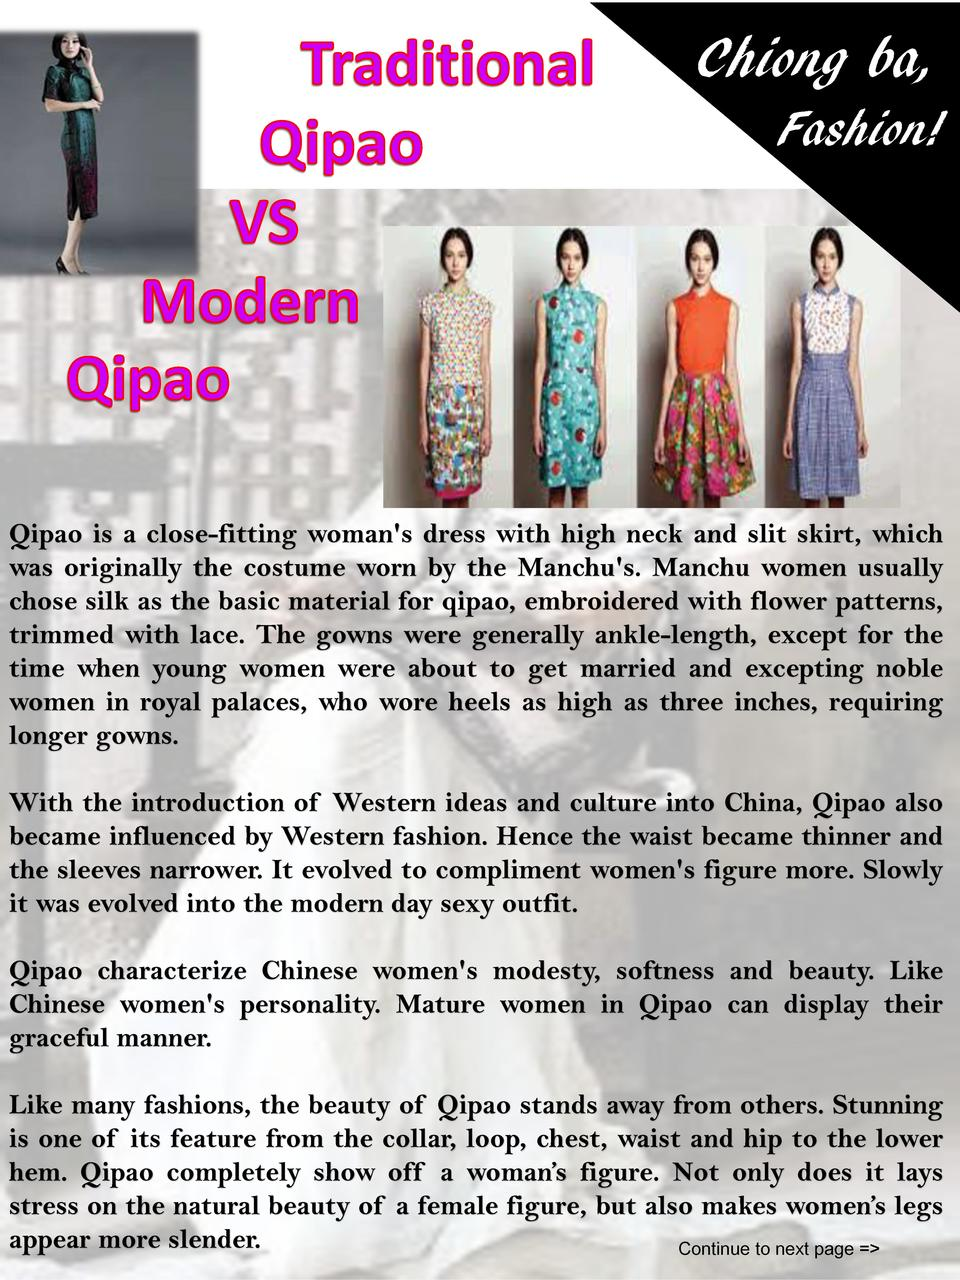 Chiong ba, Fashion   Qipao is a close-fitting woman s dress with high neck and slit skirt, which was originally the costum...